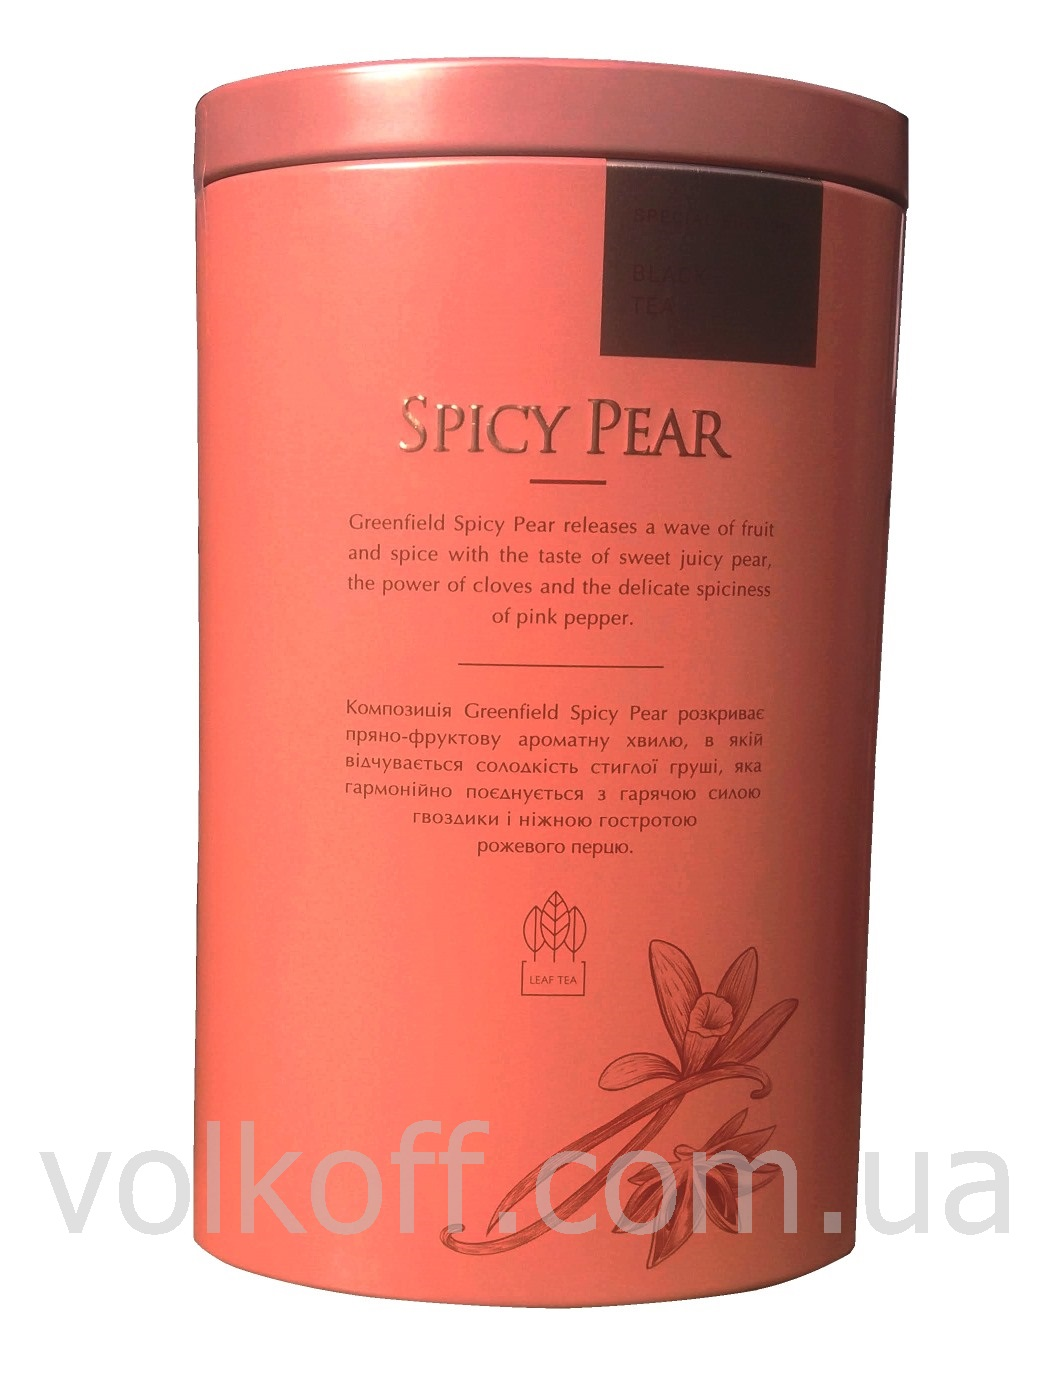 Spicy-Pear_100_2.jpg